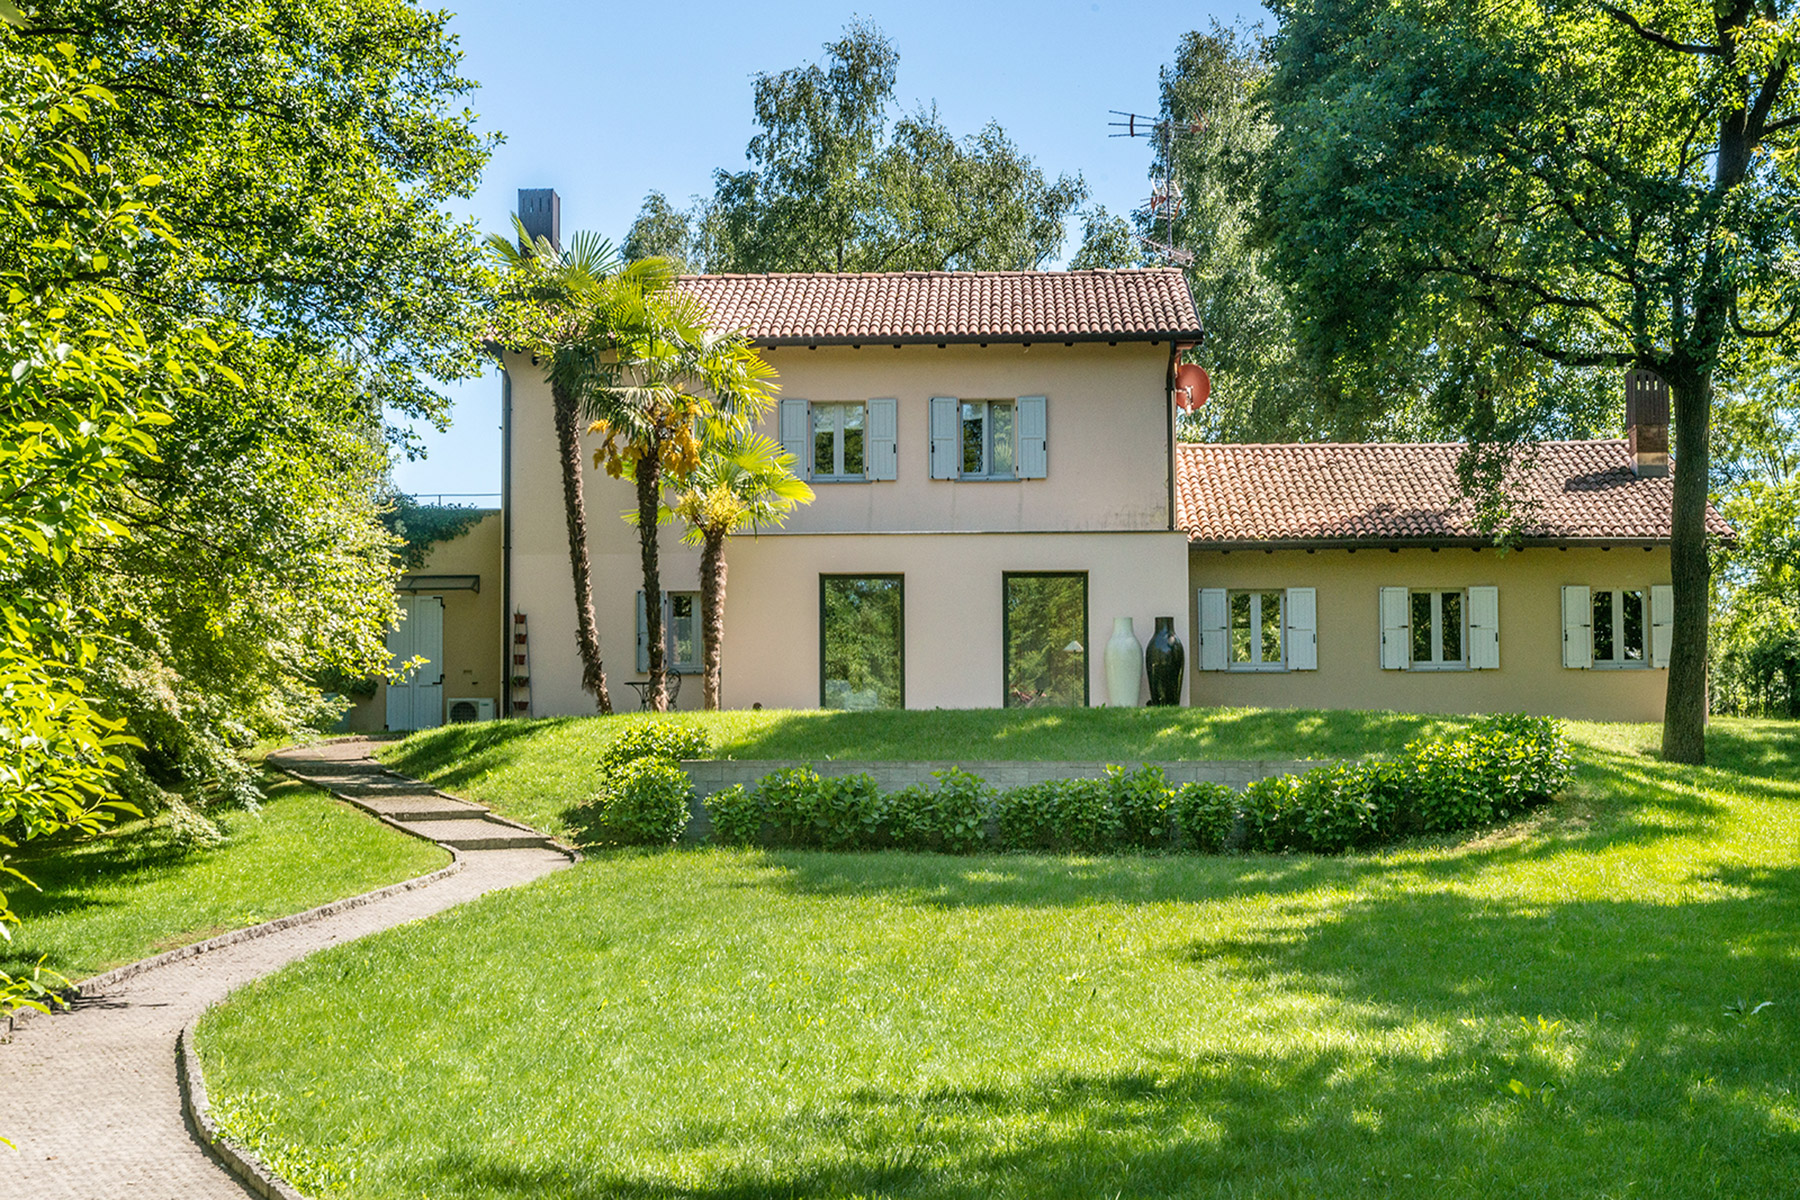 Single Family Home for Sale at Modern country house with private garden Agrate Conturbia, Novara Italy